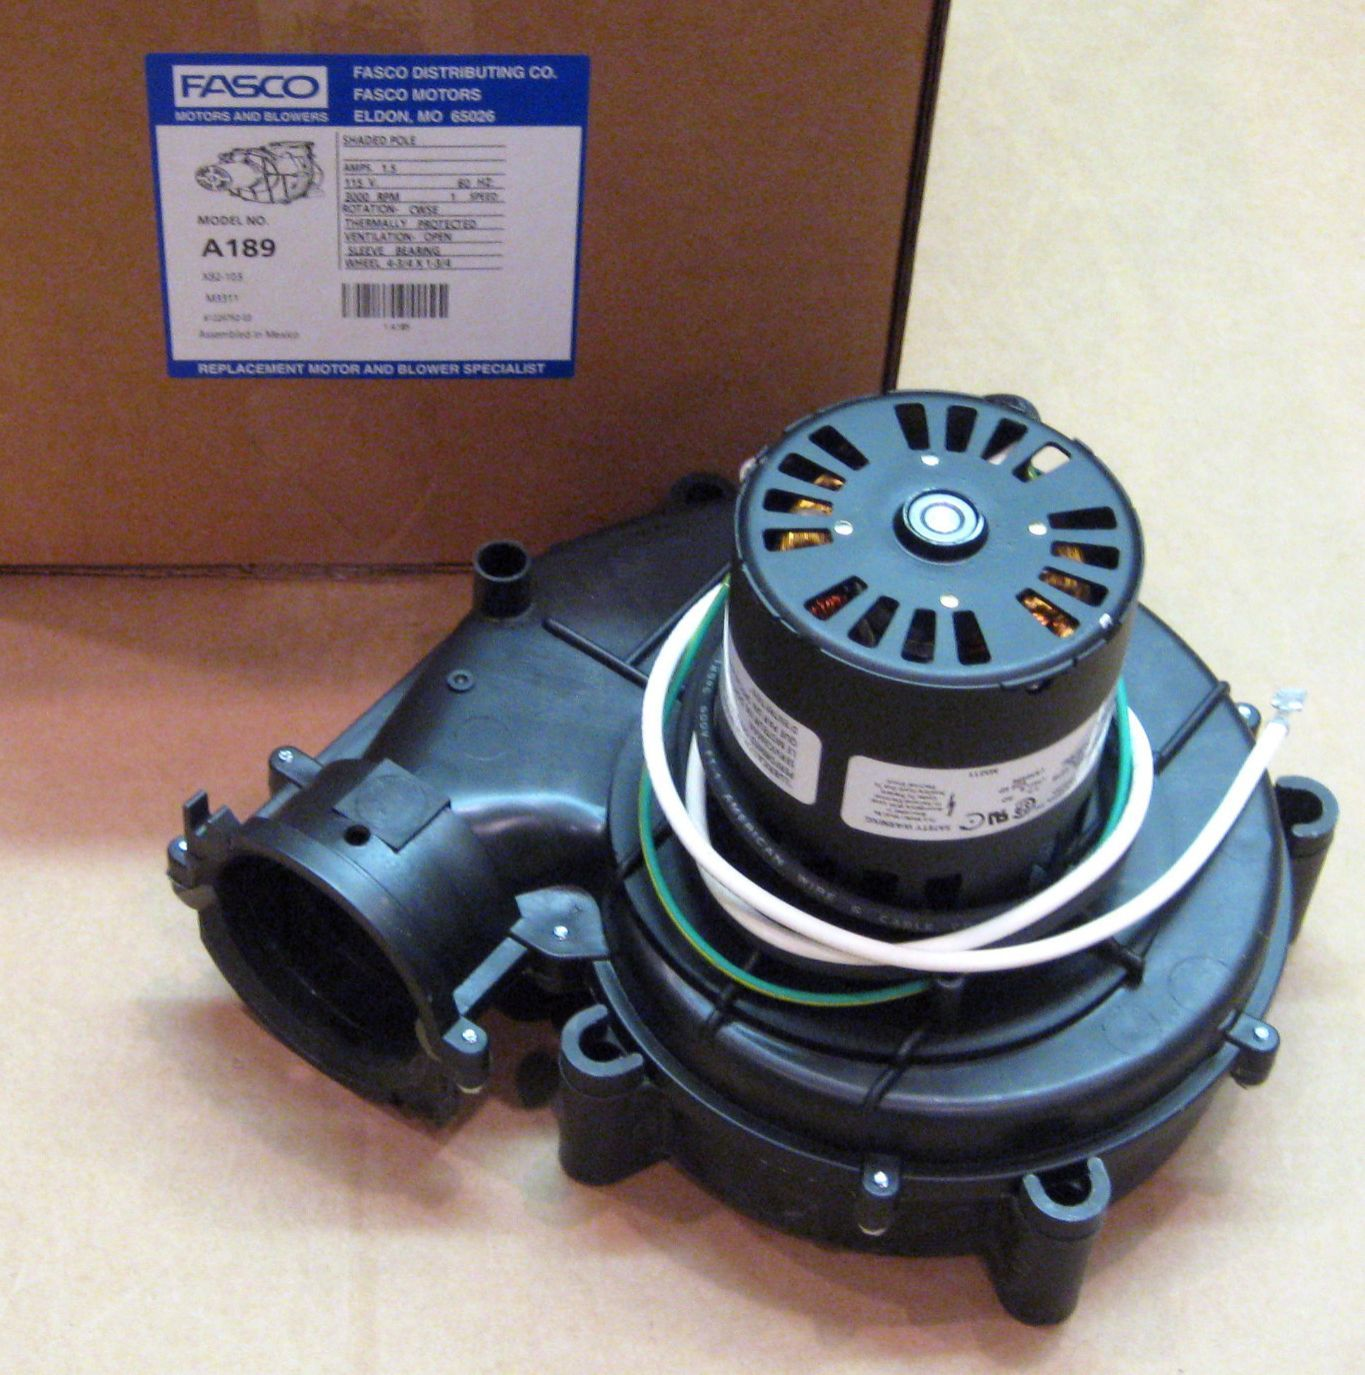 A189 fasco inducer furnace blower motor for goodman 7021 for Goodman furnace inducer motor replacement